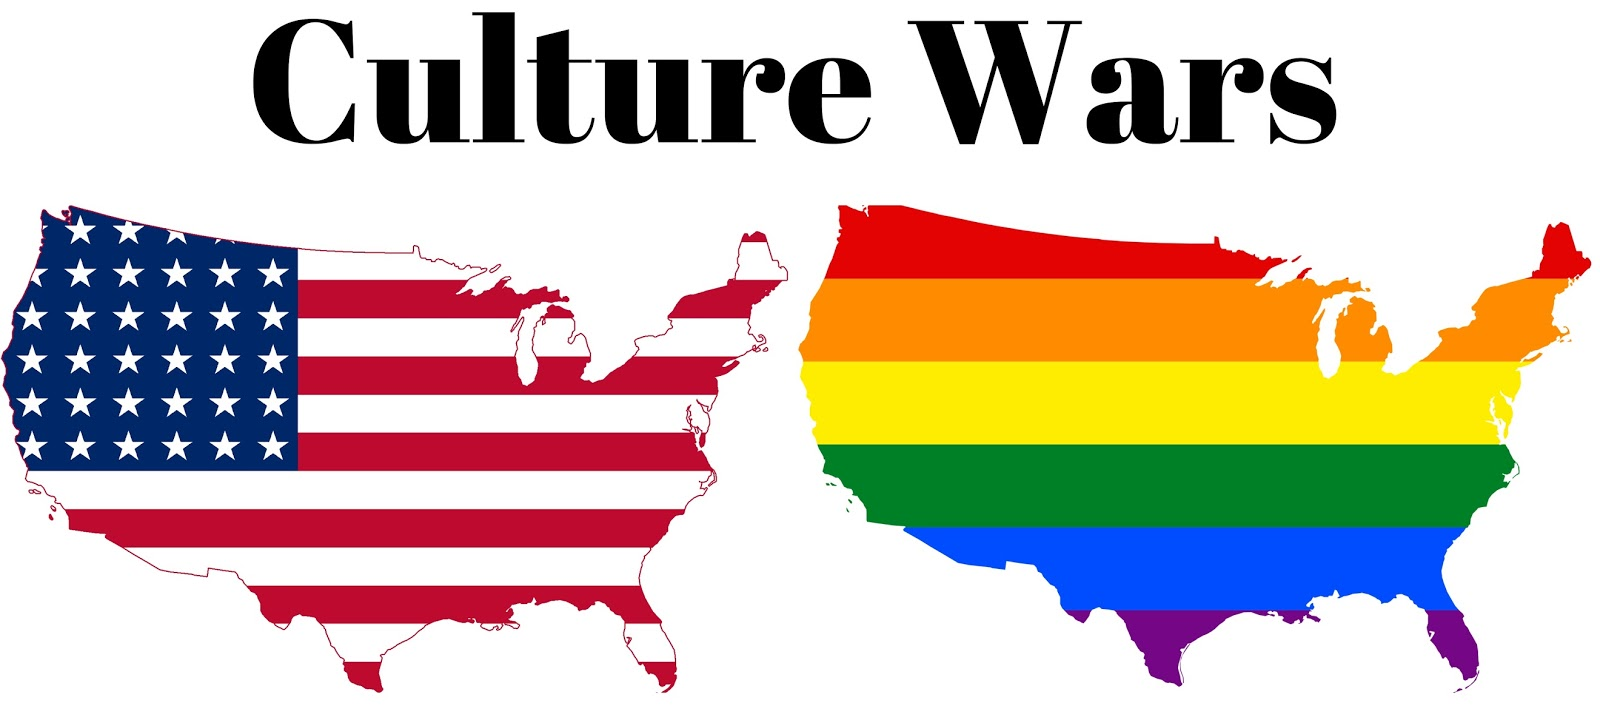 culture war thesis The conversation was an interesting, thoughtful window into progressive ideas about race, culture, and politics i highly recommend giving it a listen.